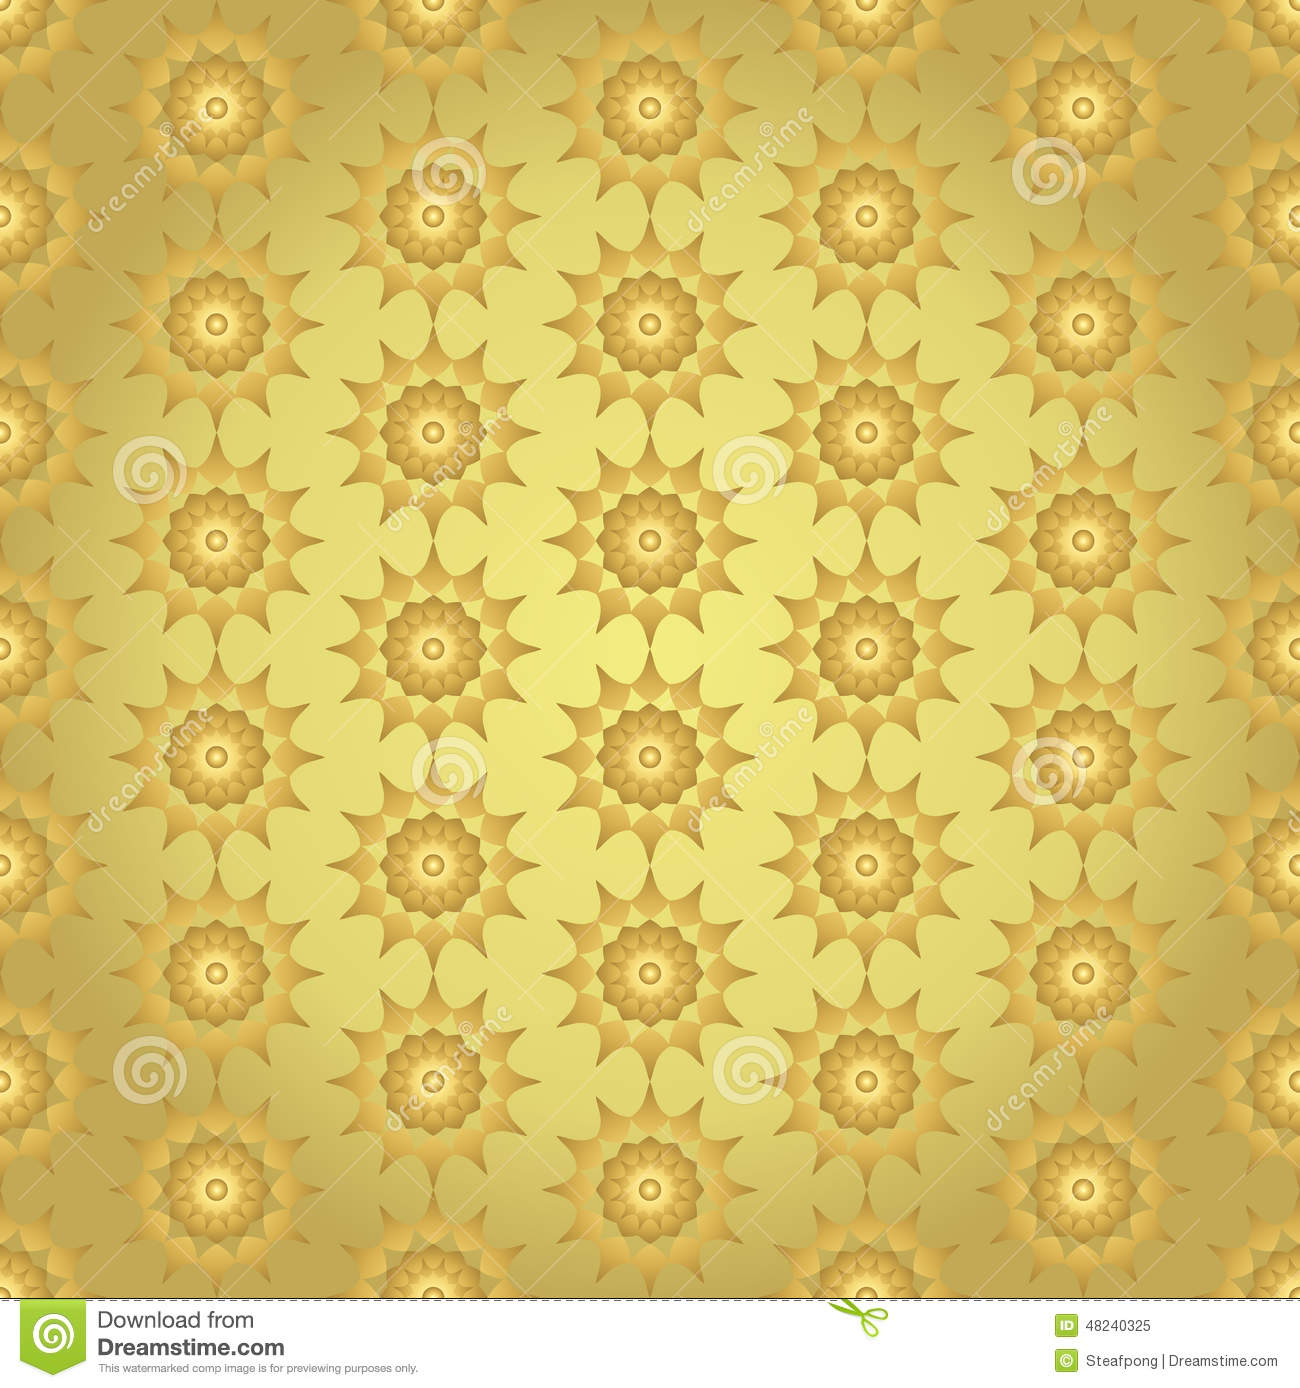 light gold vintage background - photo #15